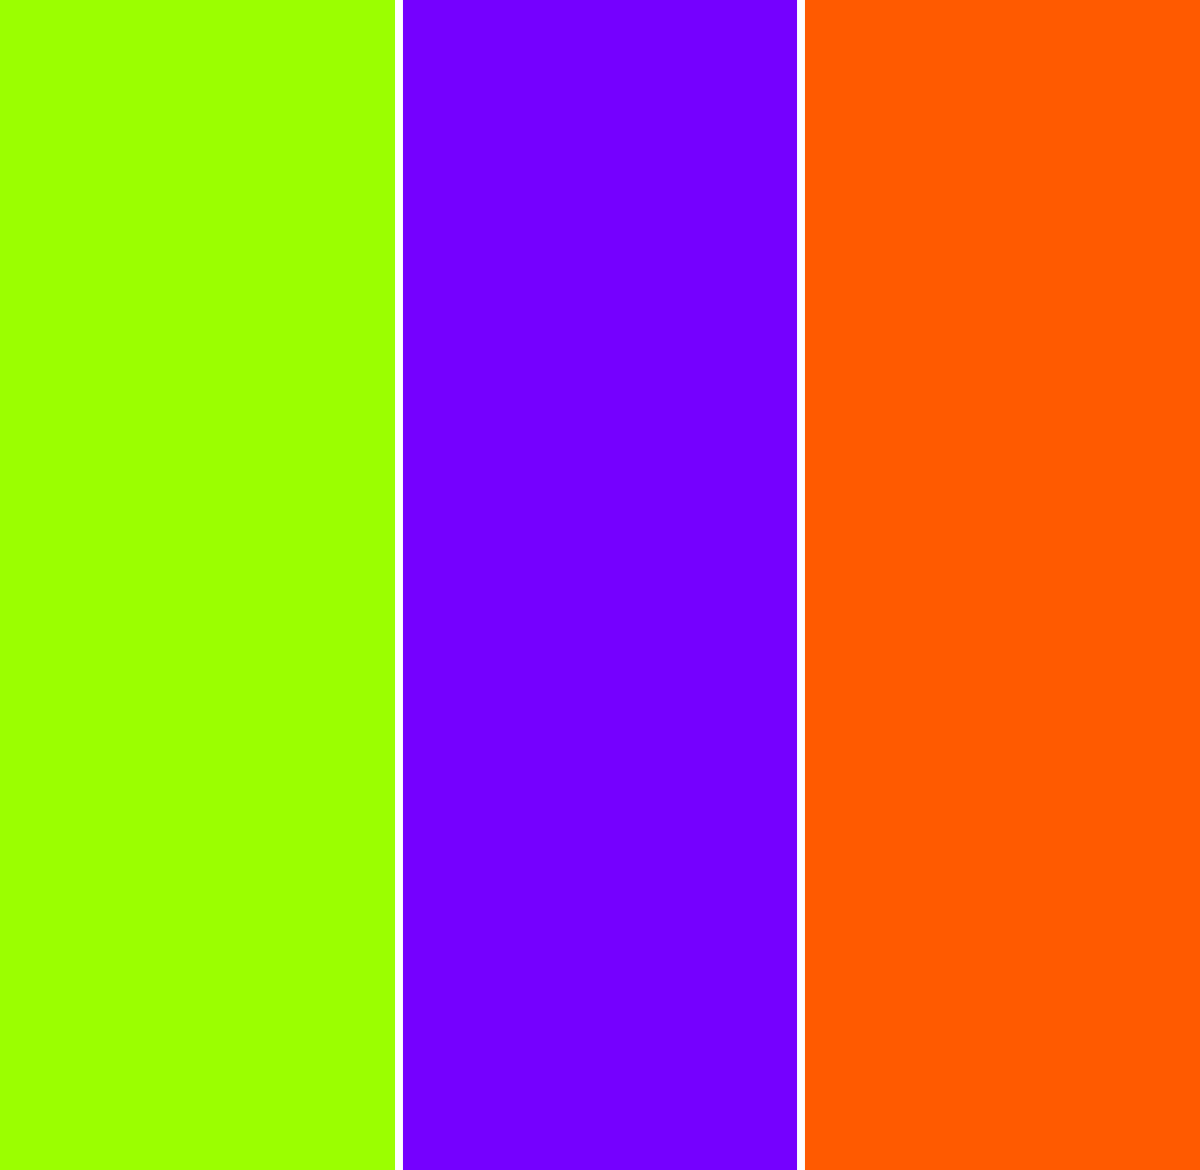 3 vertical bars of colour: yellow-gree, blue-violet, and red-orange